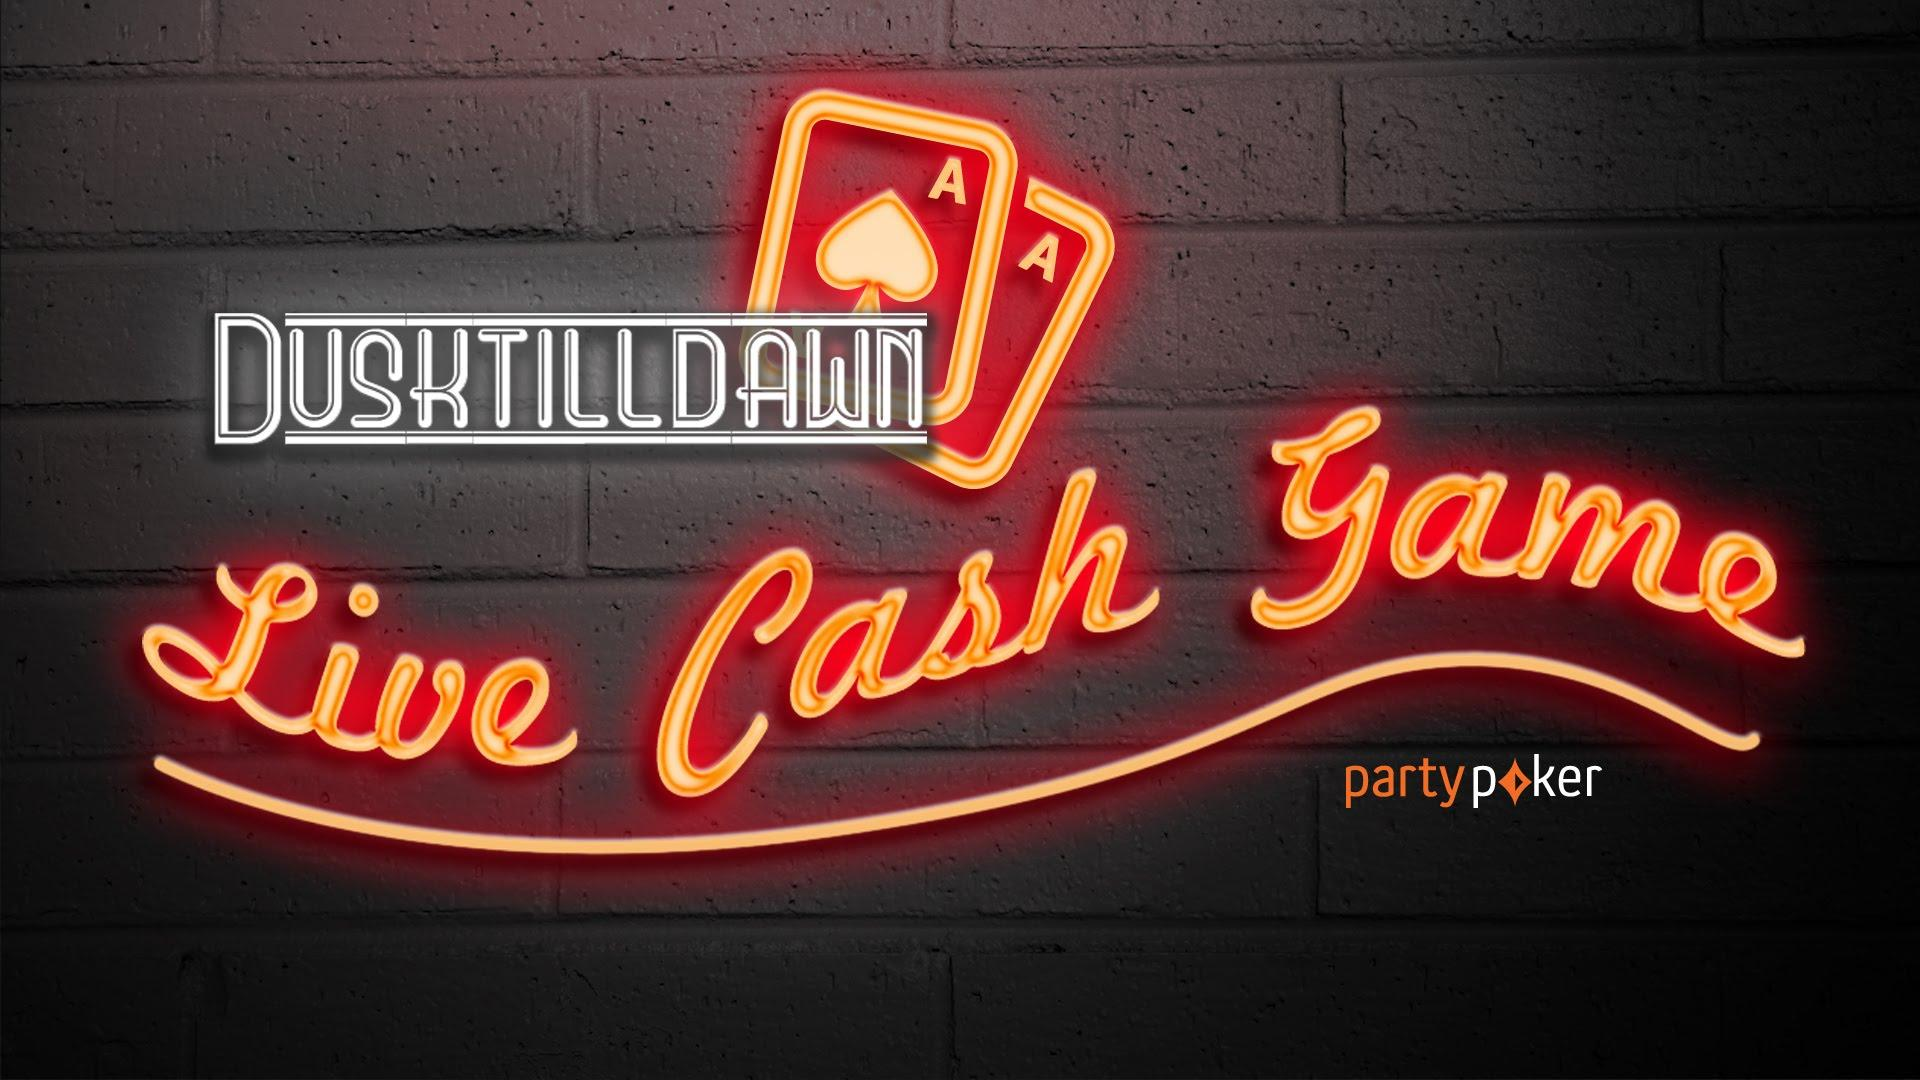 DTD Live Cash Game Weekend - 23rd April 2016